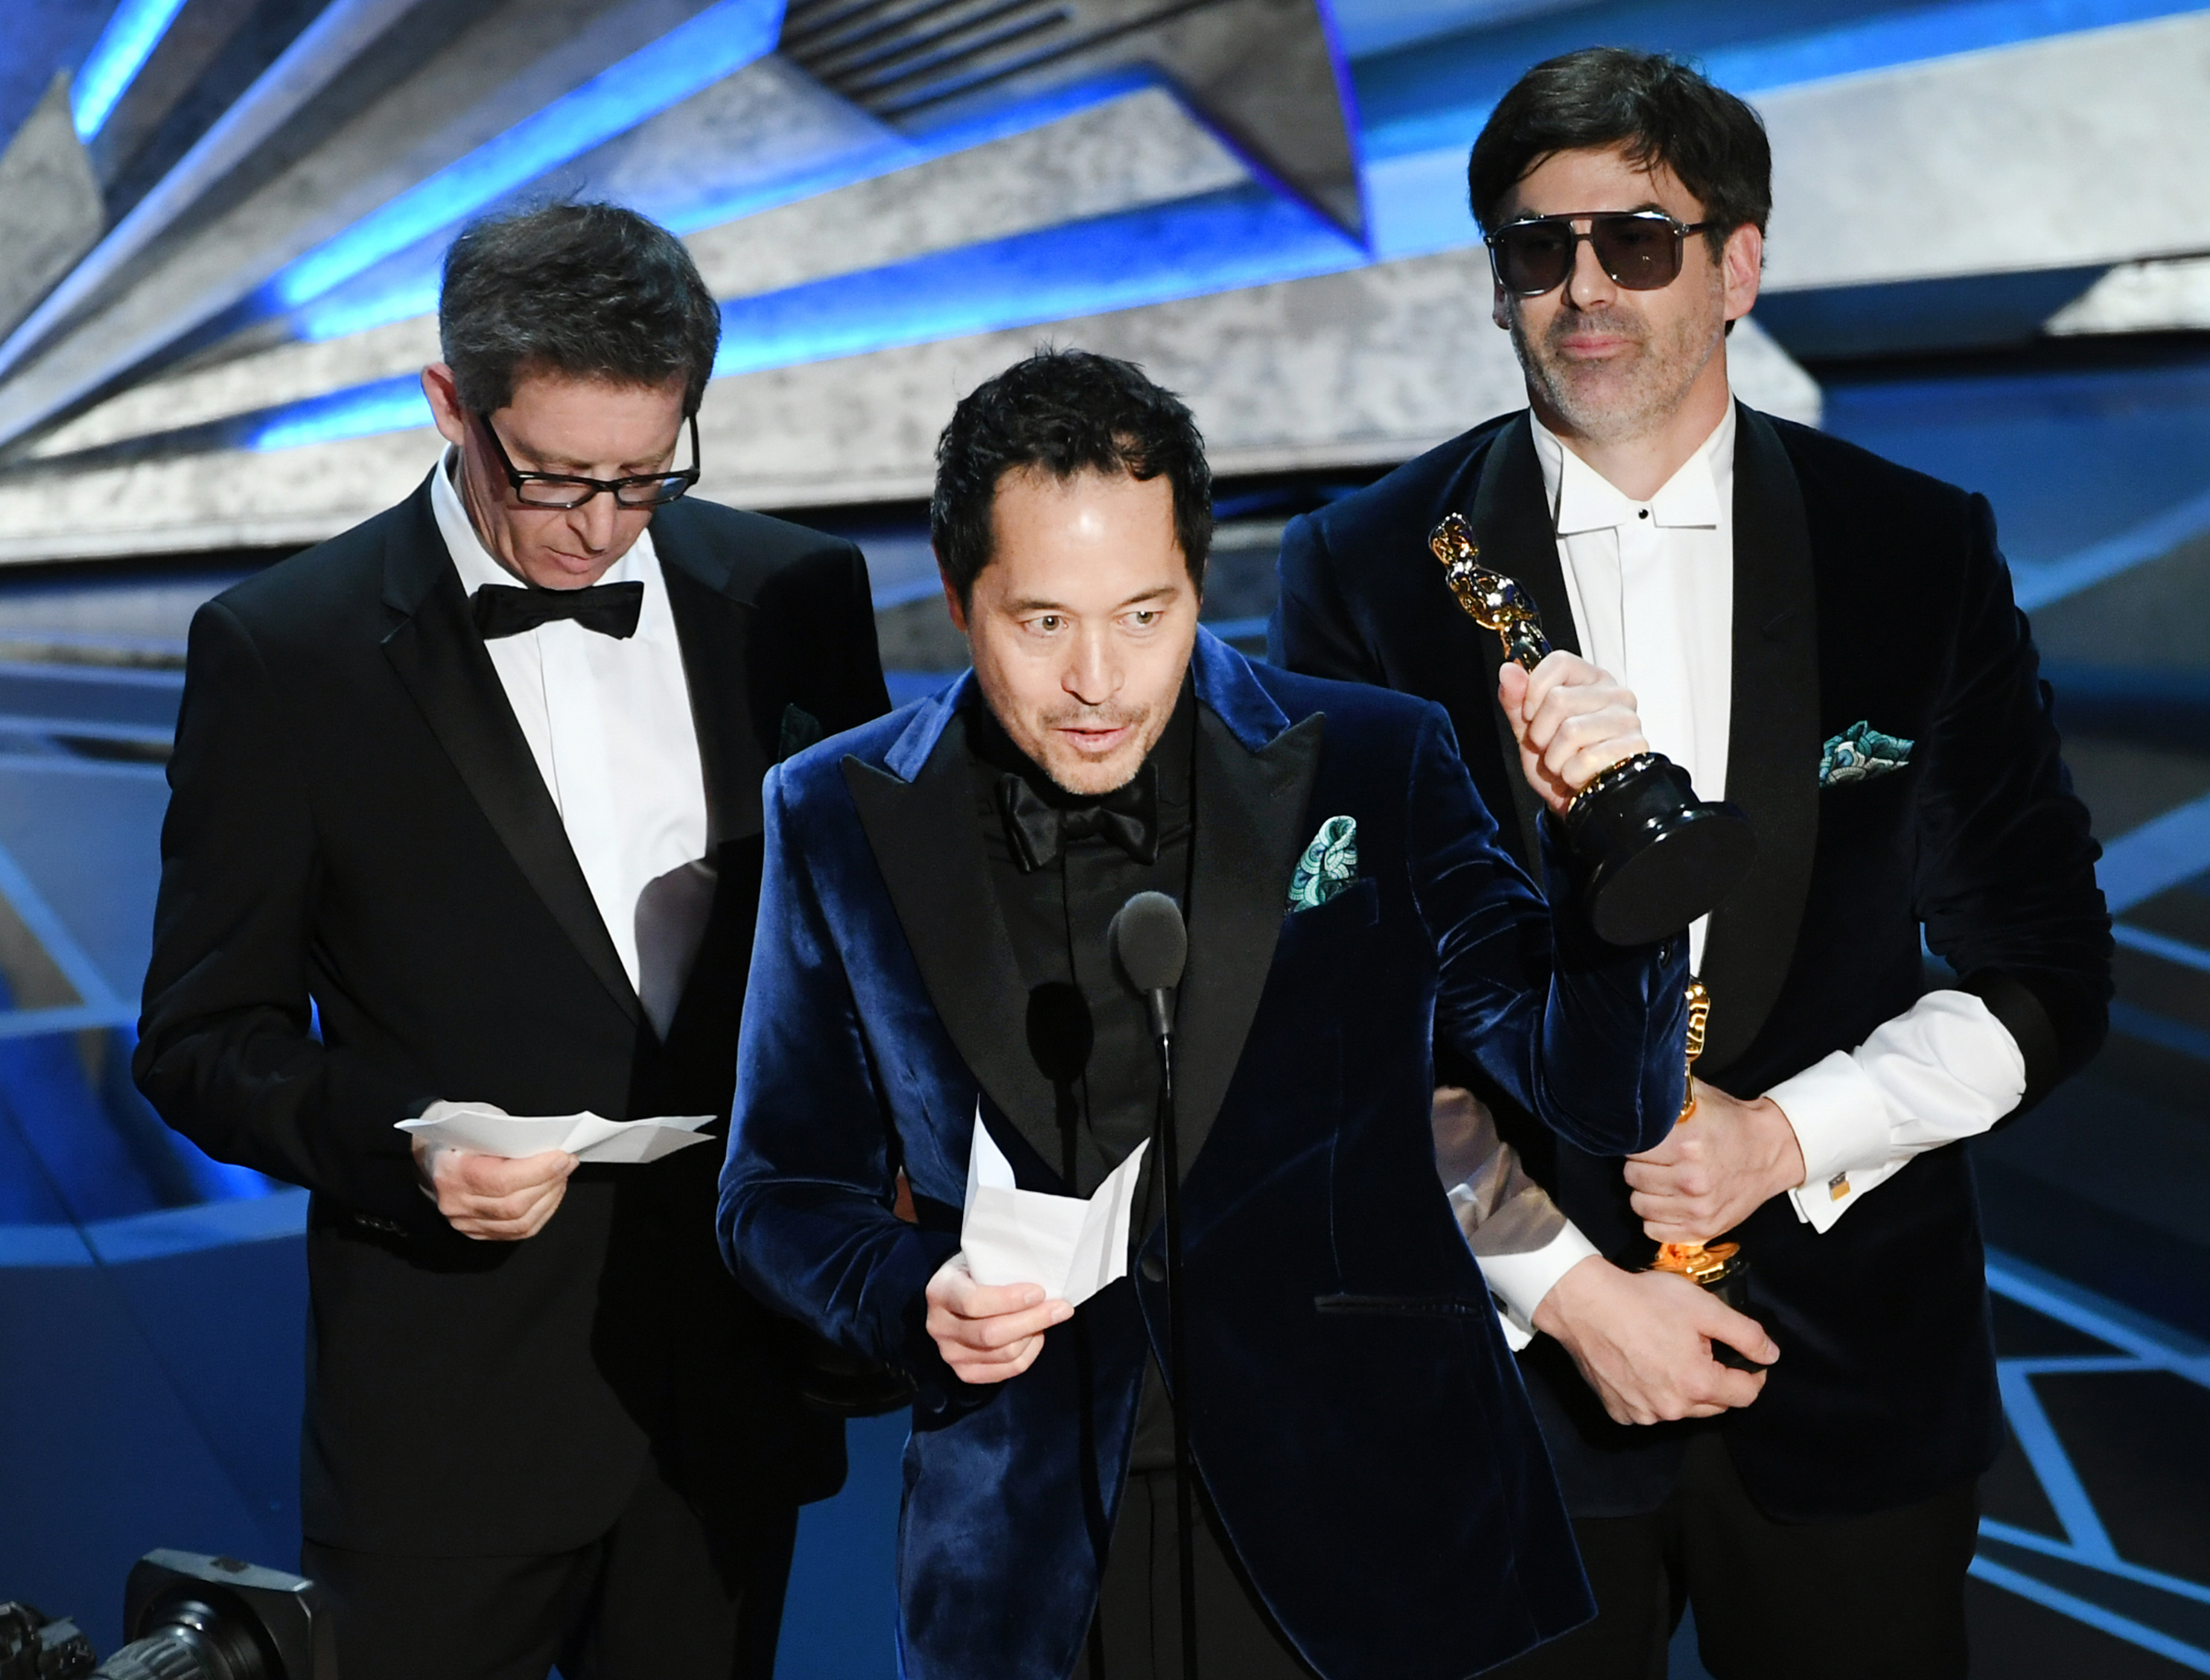 Production designers Jeff Melvin, Paul Denham Austerberry and Shane Vieau accept Best Production Design for 'The Shape of Water' onstage during the 90th Annual Academy Awards at the Dolby Theatre at Hollywood & Highland Center on March 4, 2018 in Hollywood.